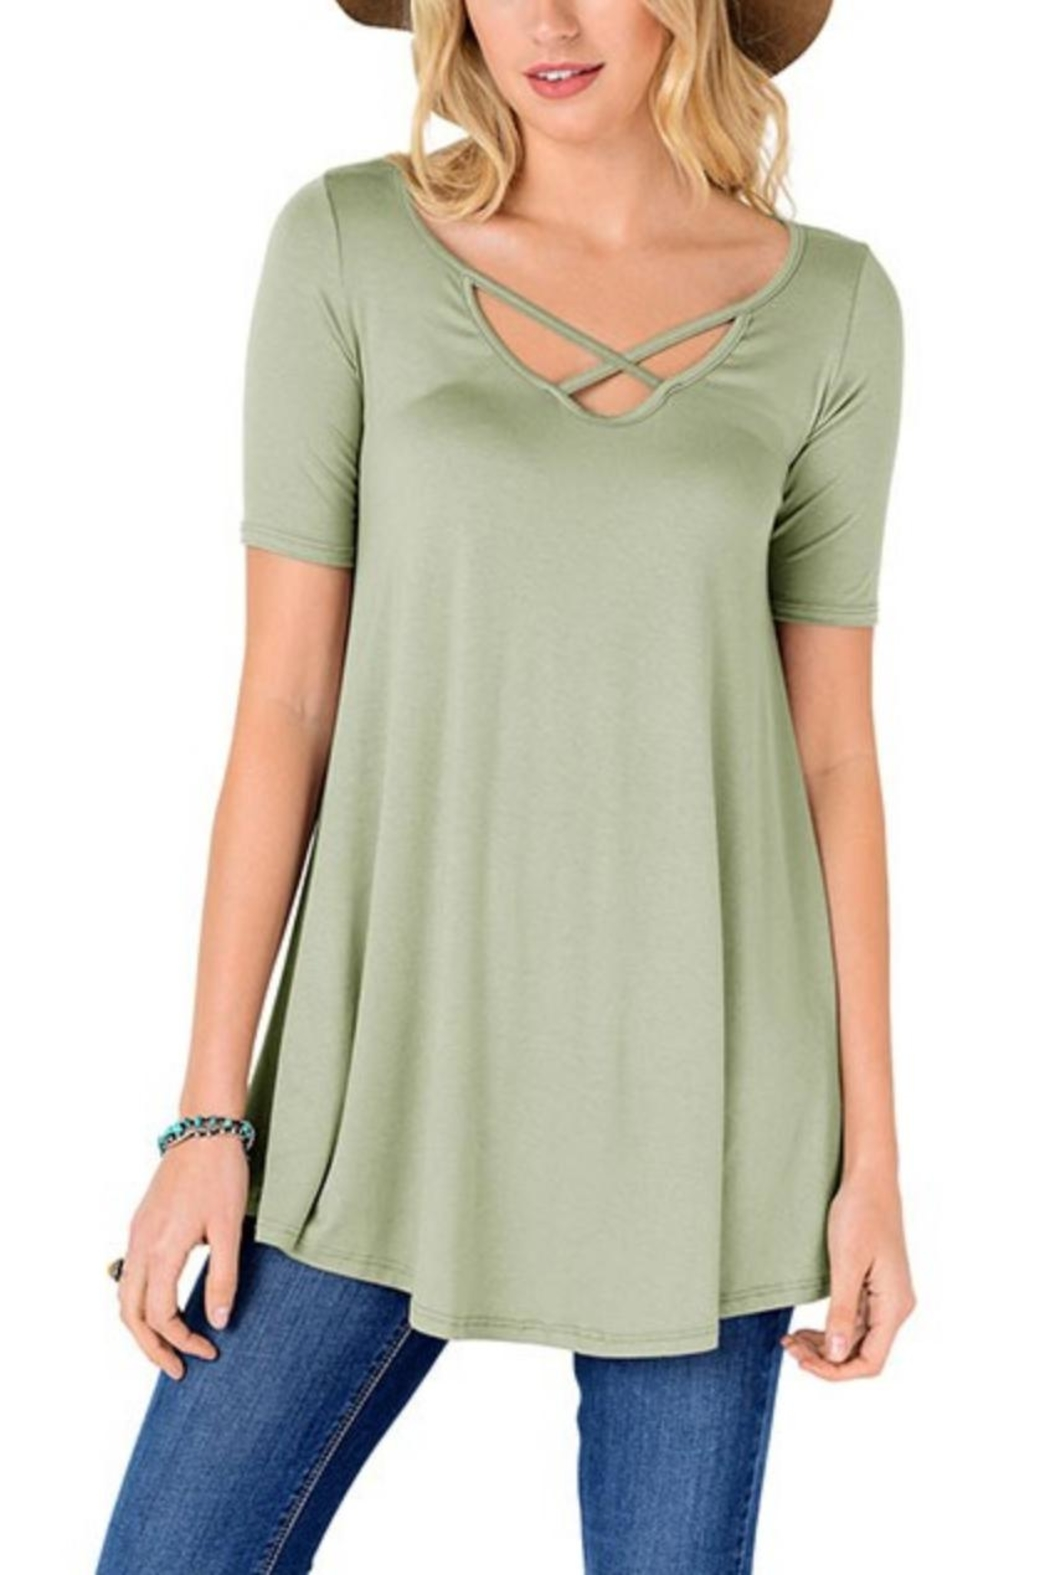 Fashion Corner Criss Cross Scoop Top - Main Image